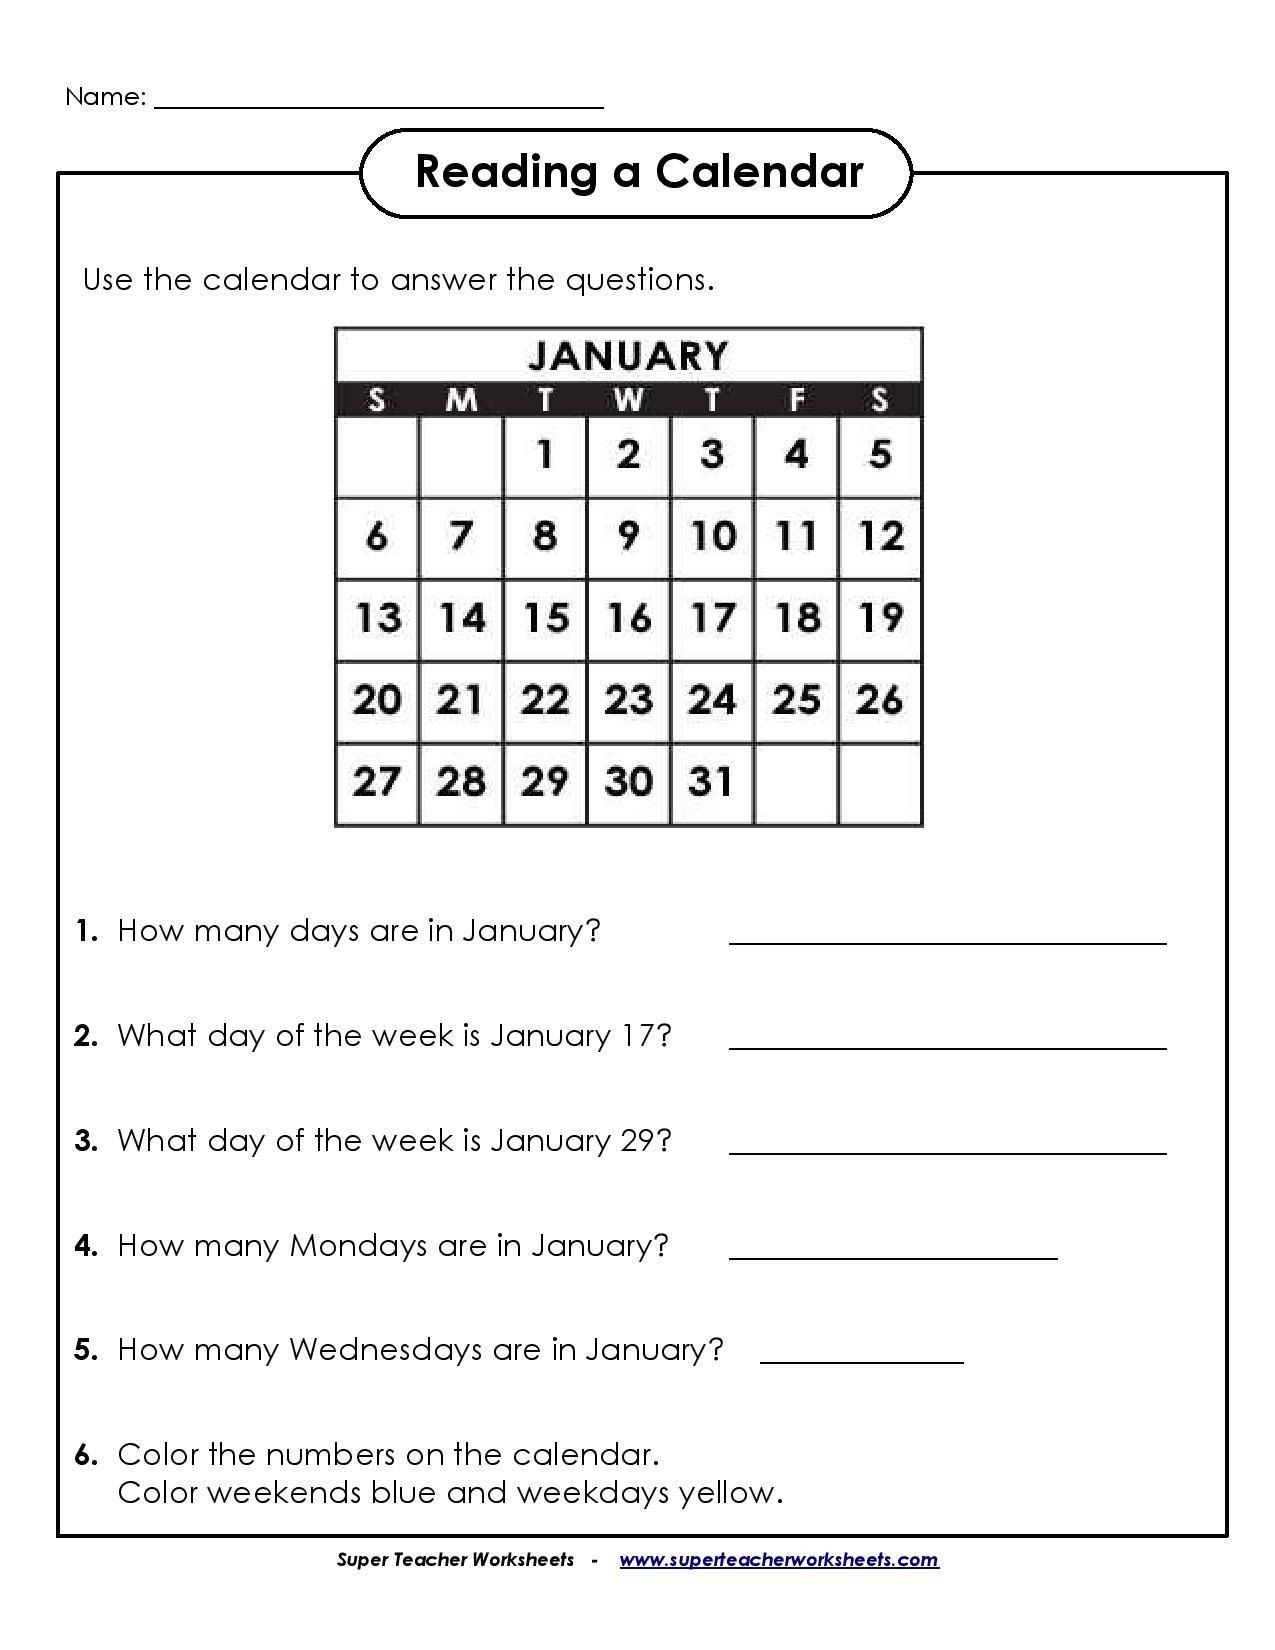 Calendar Worksheets for First Grade ✅ Best 2nd Grade Math Worksheet in  2020   Calendar math [ 1650 x 1275 Pixel ]